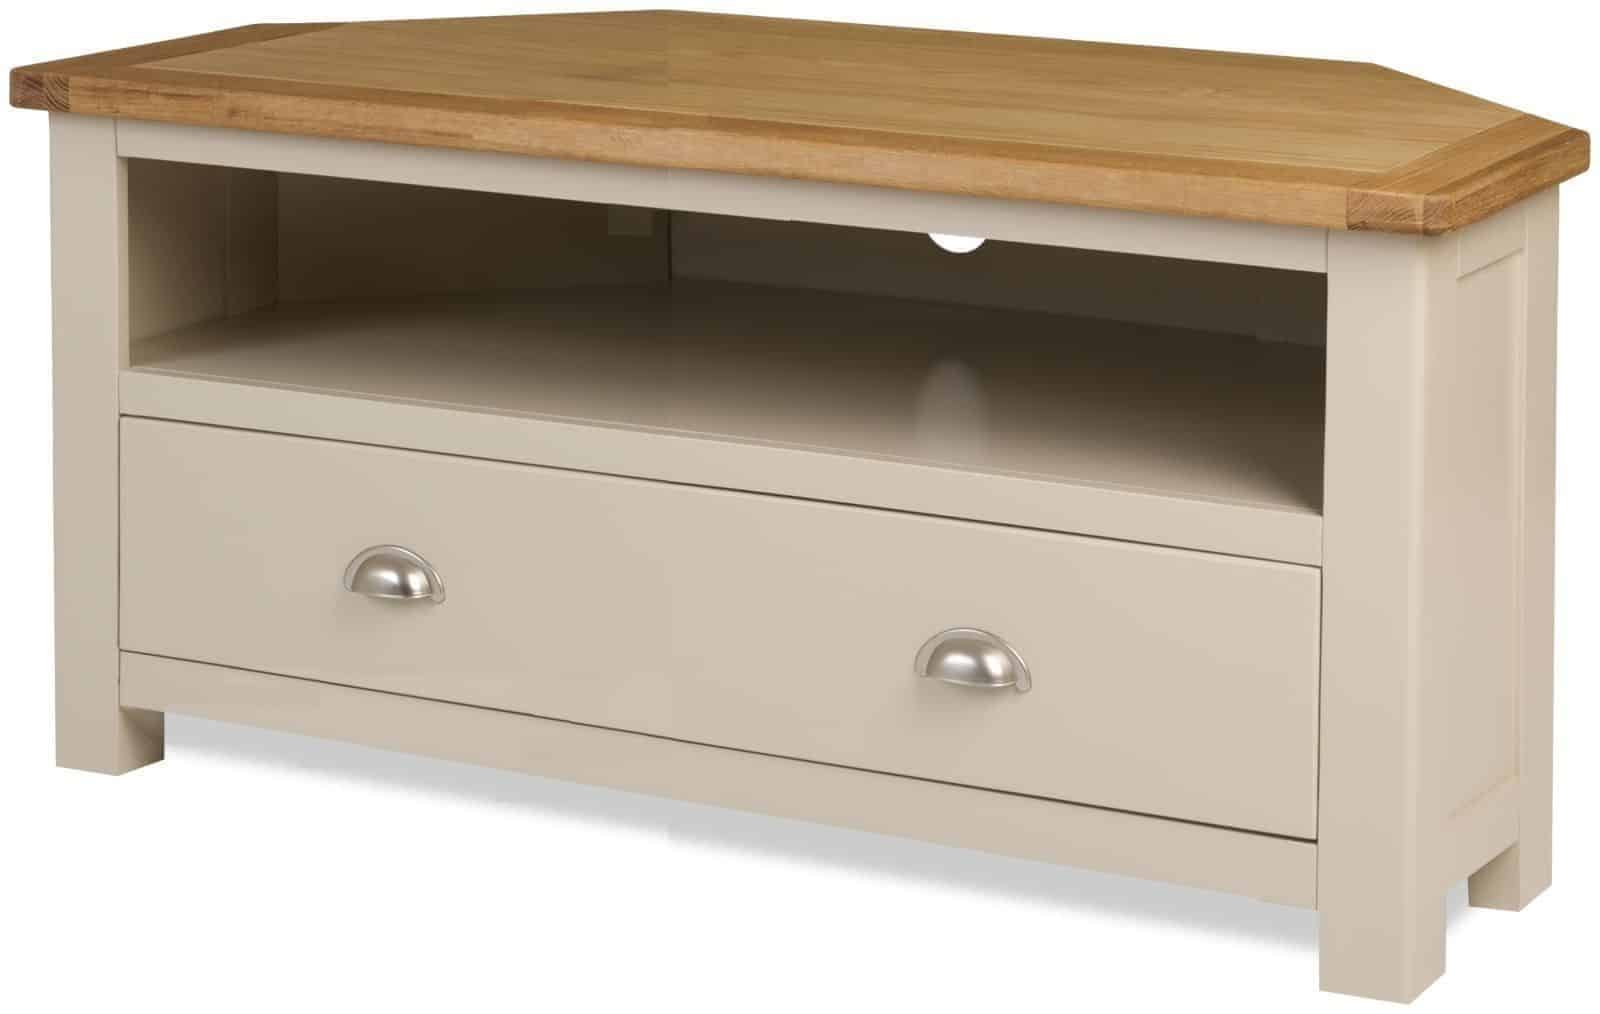 Melton Stone Colour Painted Oak Corner Lcd Tv Cabinet In Compton Ivory Corner Tv Stands (View 2 of 20)